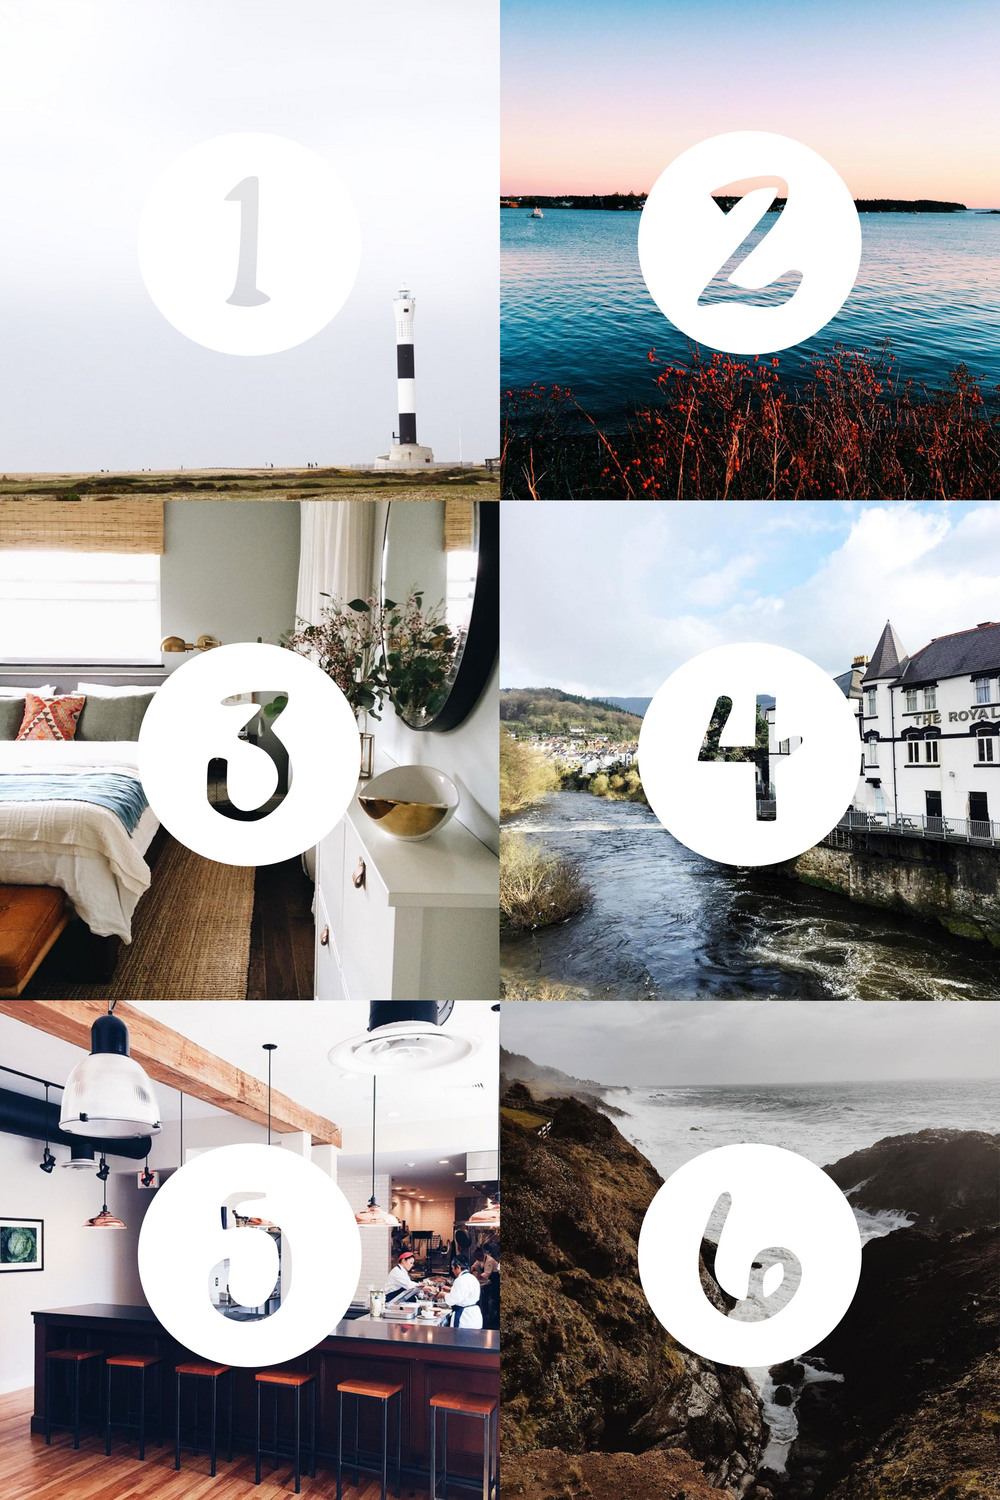 Six Beautiful And Inspiring Instagram Accounts | Sea of Atlas